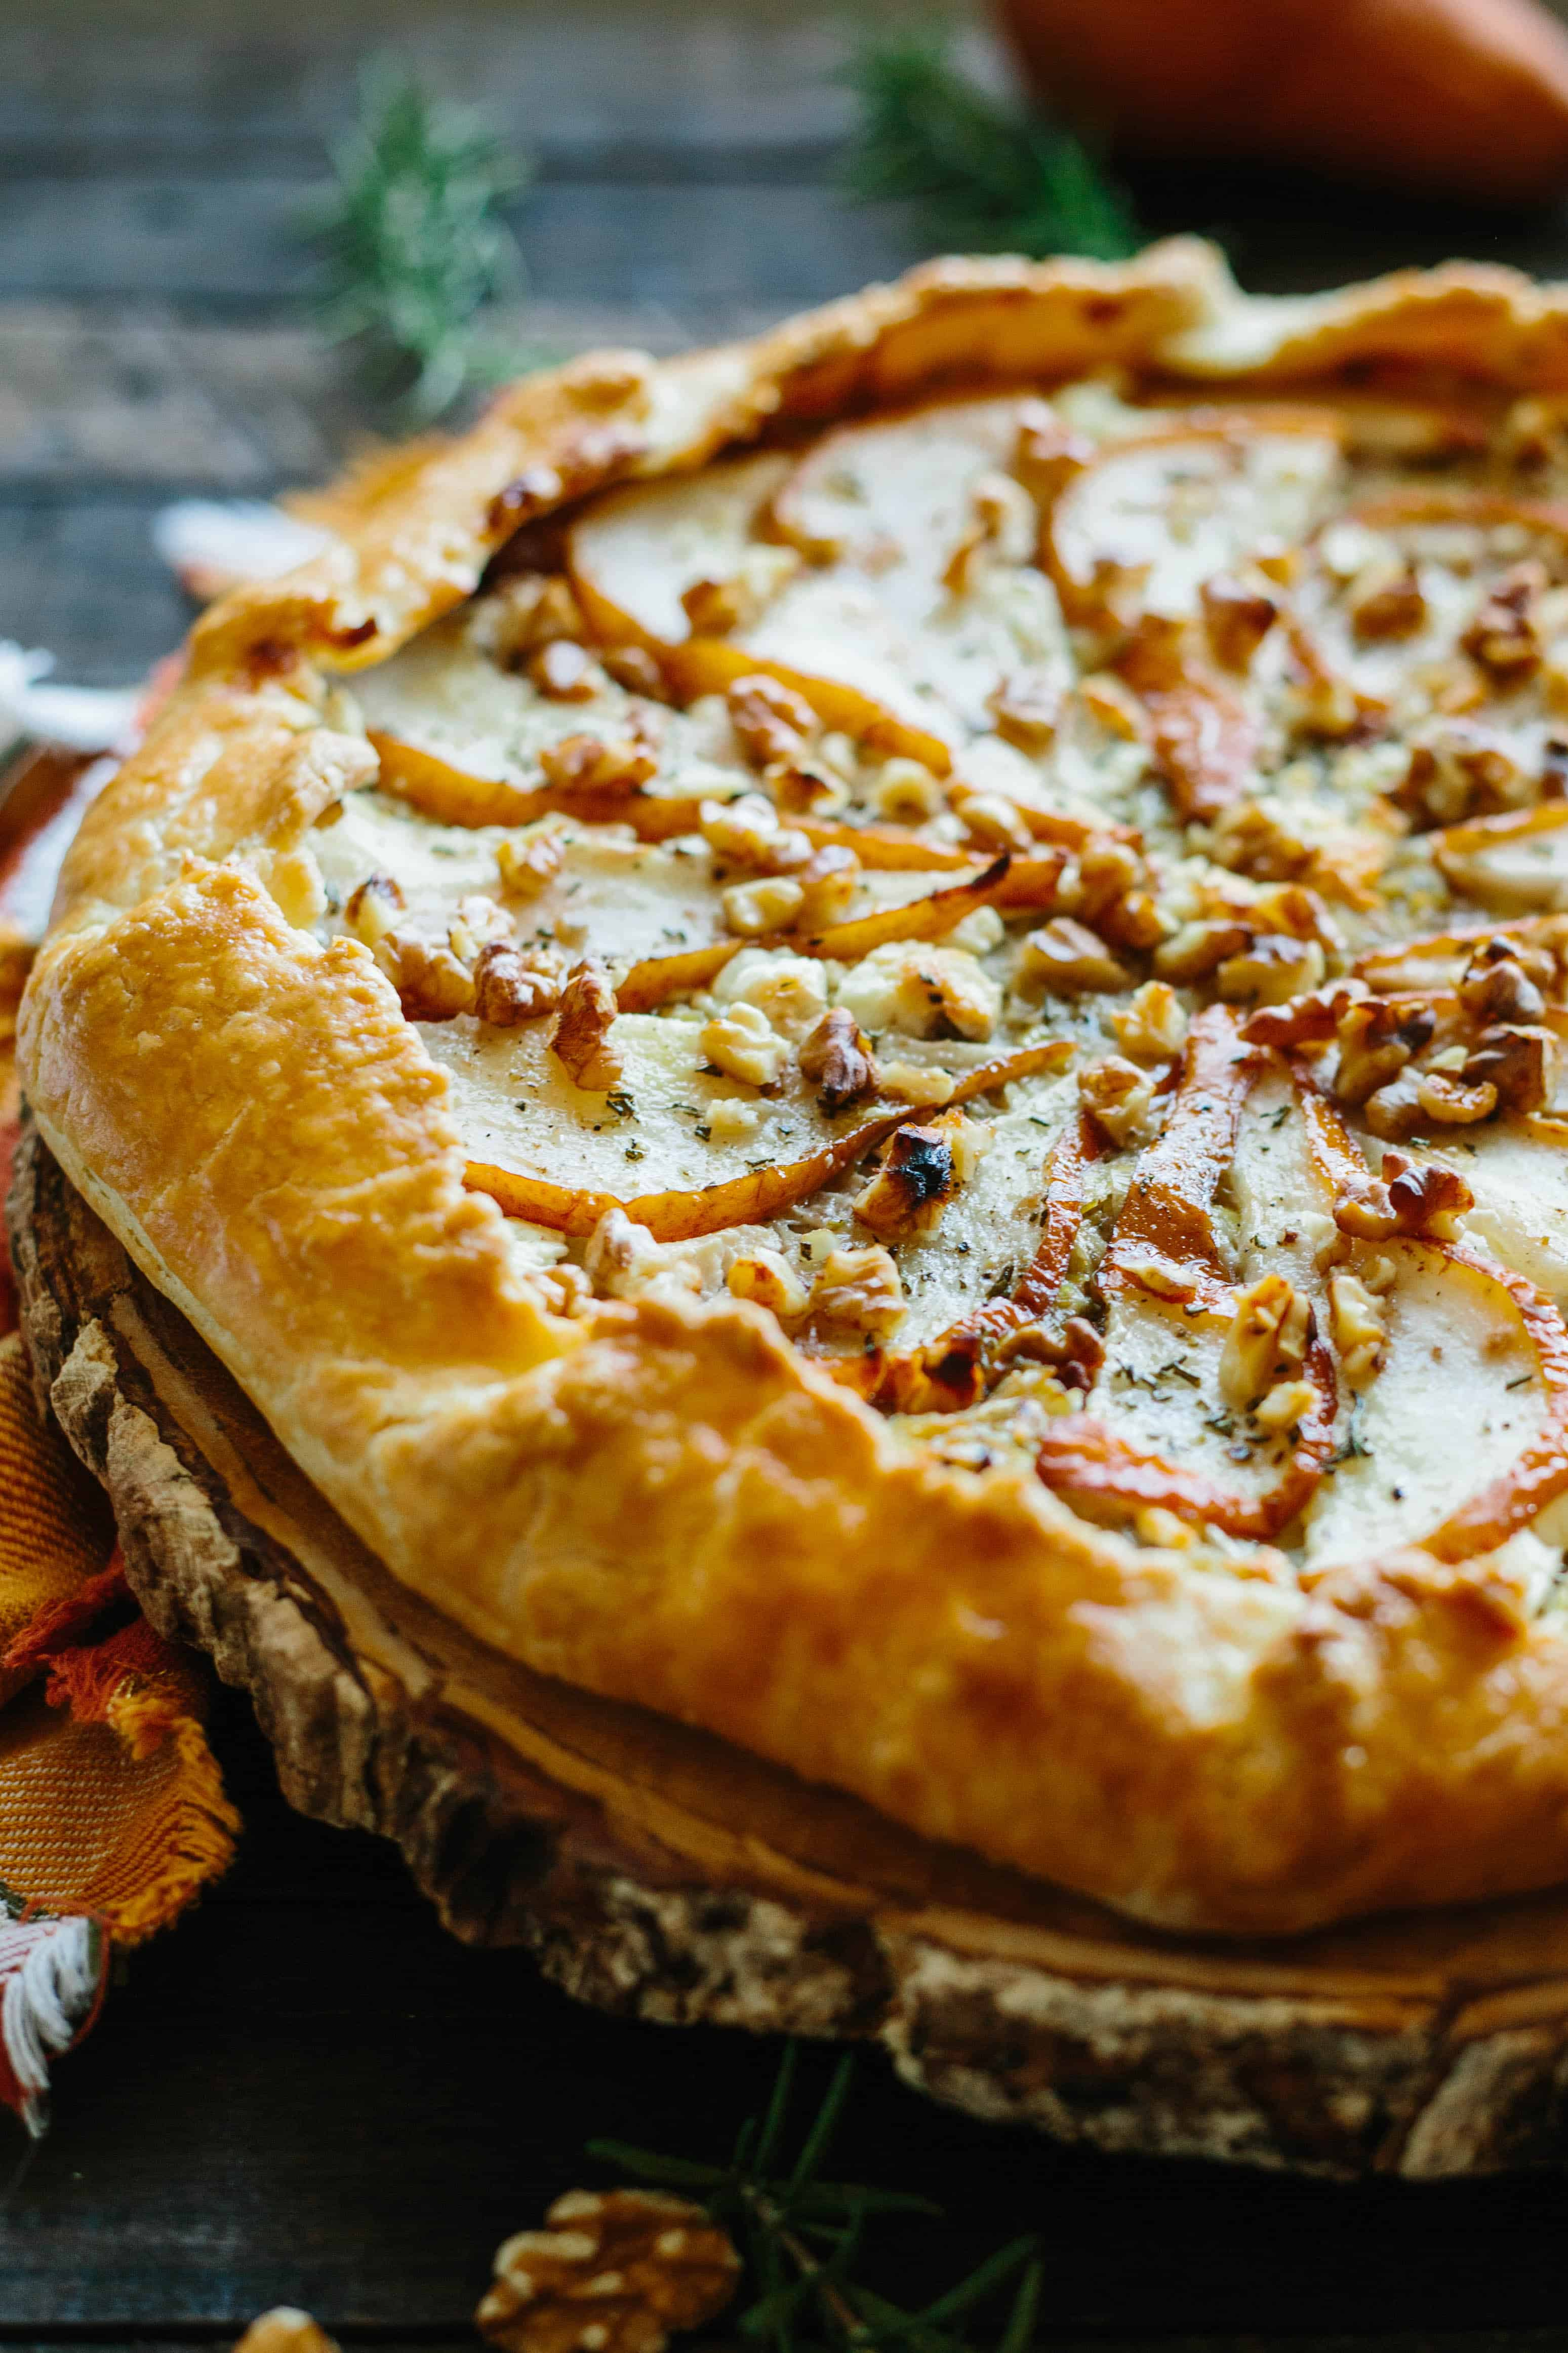 PEAR + LEEK GALETTE with Goat Cheese + Walnuts   Delicious savory free-form tart perfect as a Thanksgiving appetizer #Thanksgiving #appetizer #entertaining #recipe #pear #leek #savory #galette #pie   ColeyCooks.com